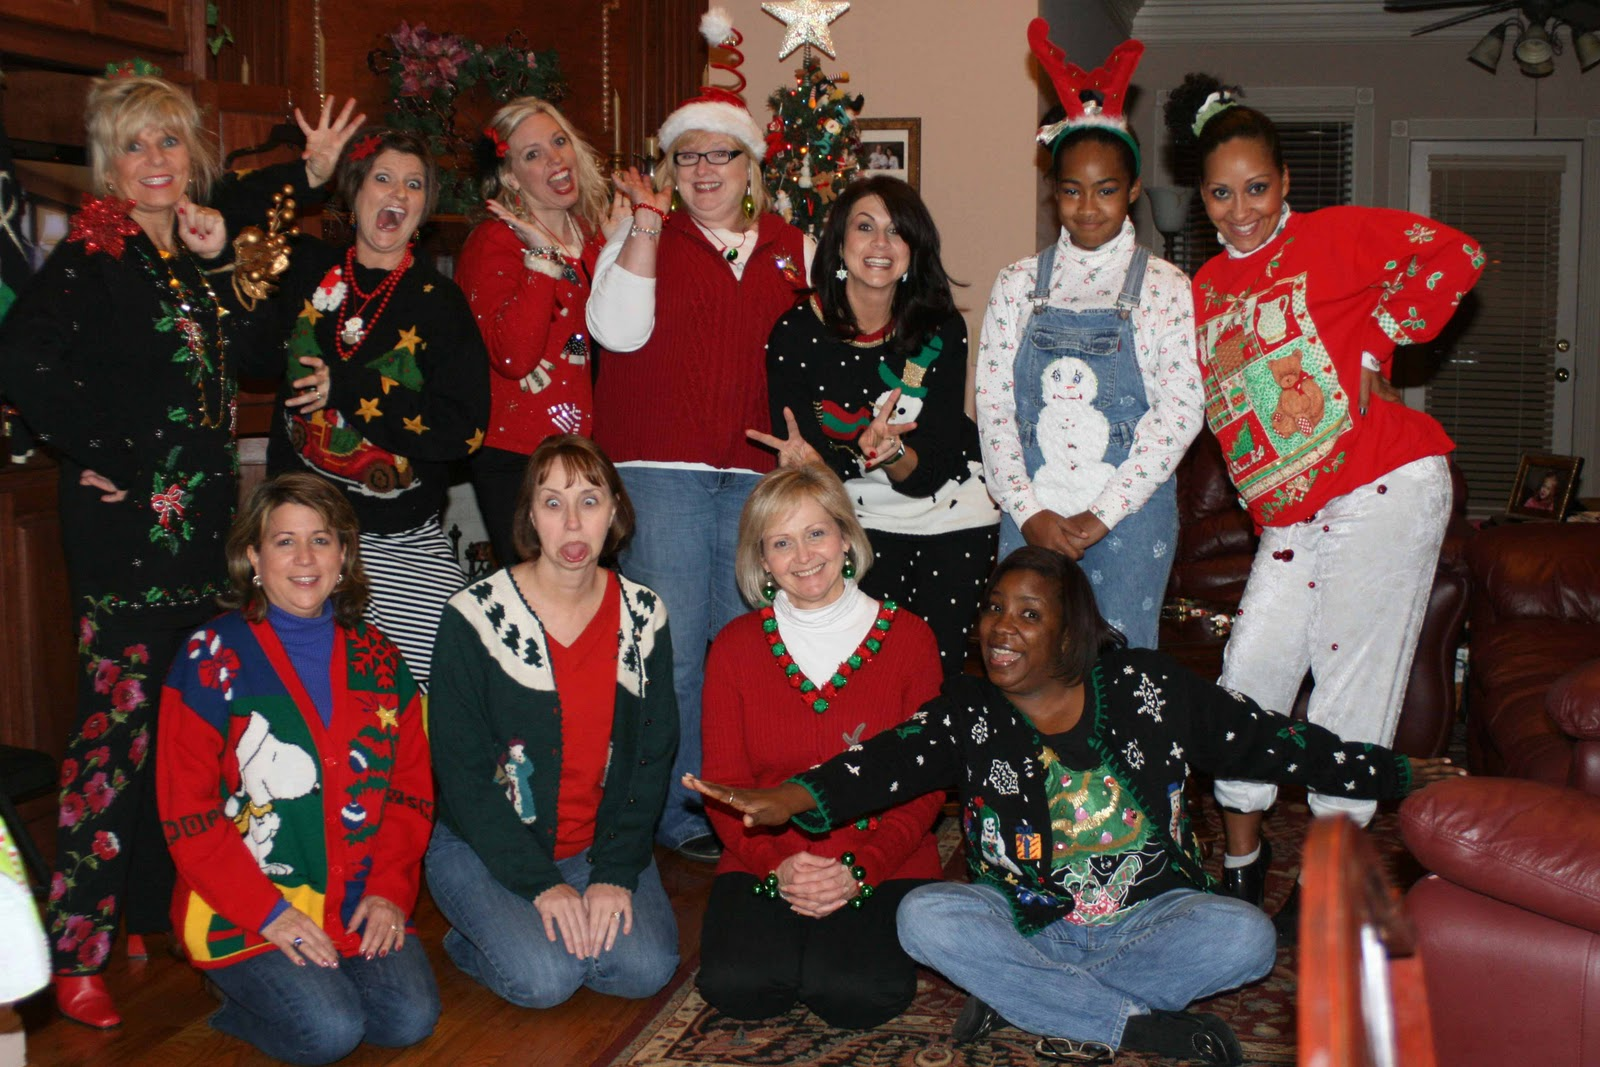 Ugly sweaters for christmas party